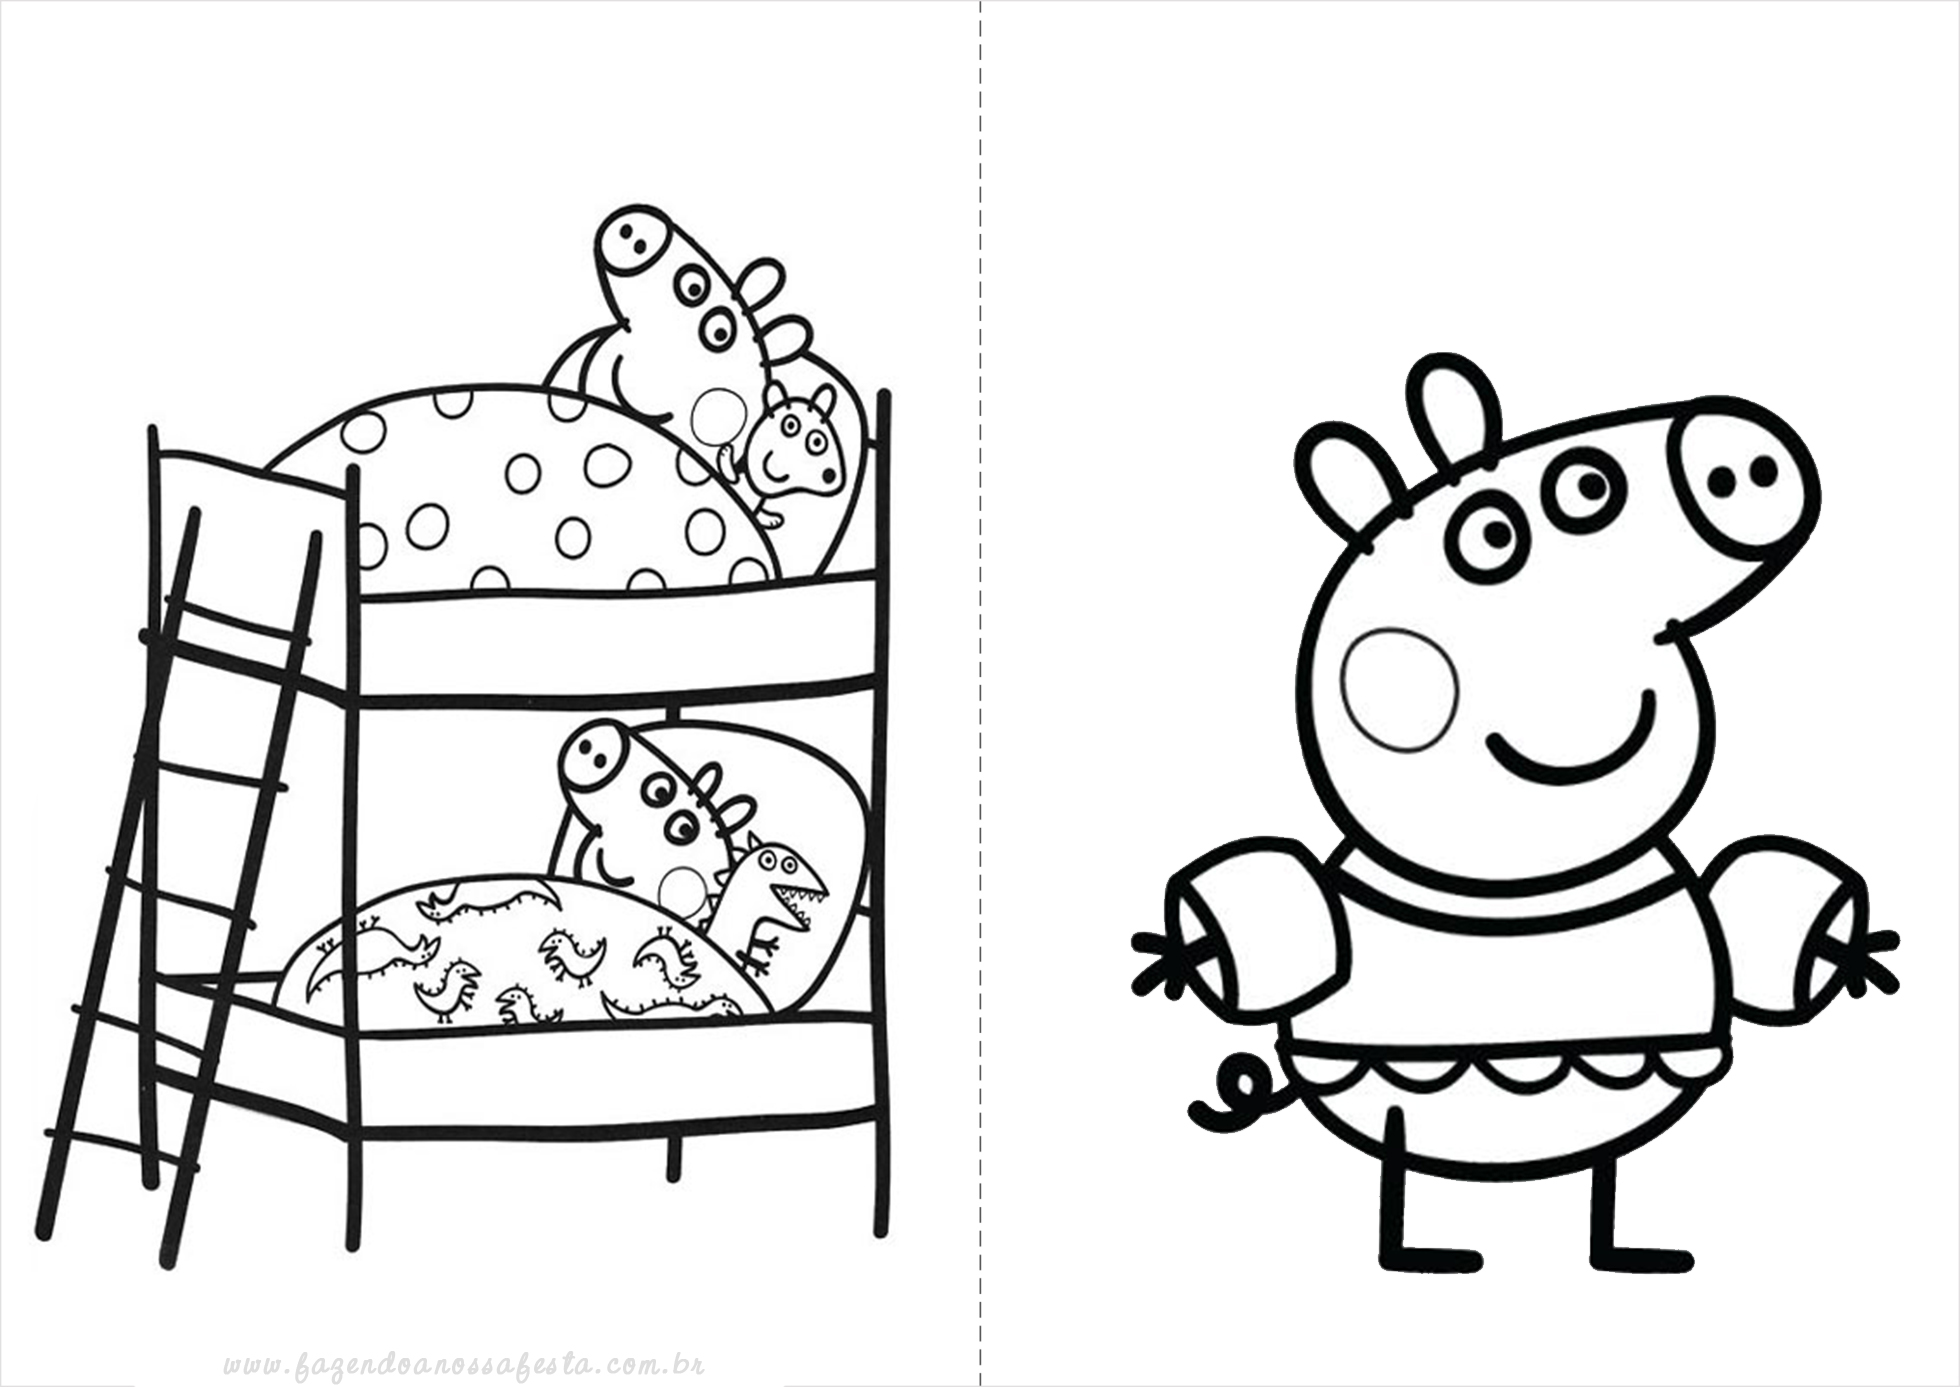 Peppa Pig George Playing With Ball BEST Funny Coloring Book Learning colors